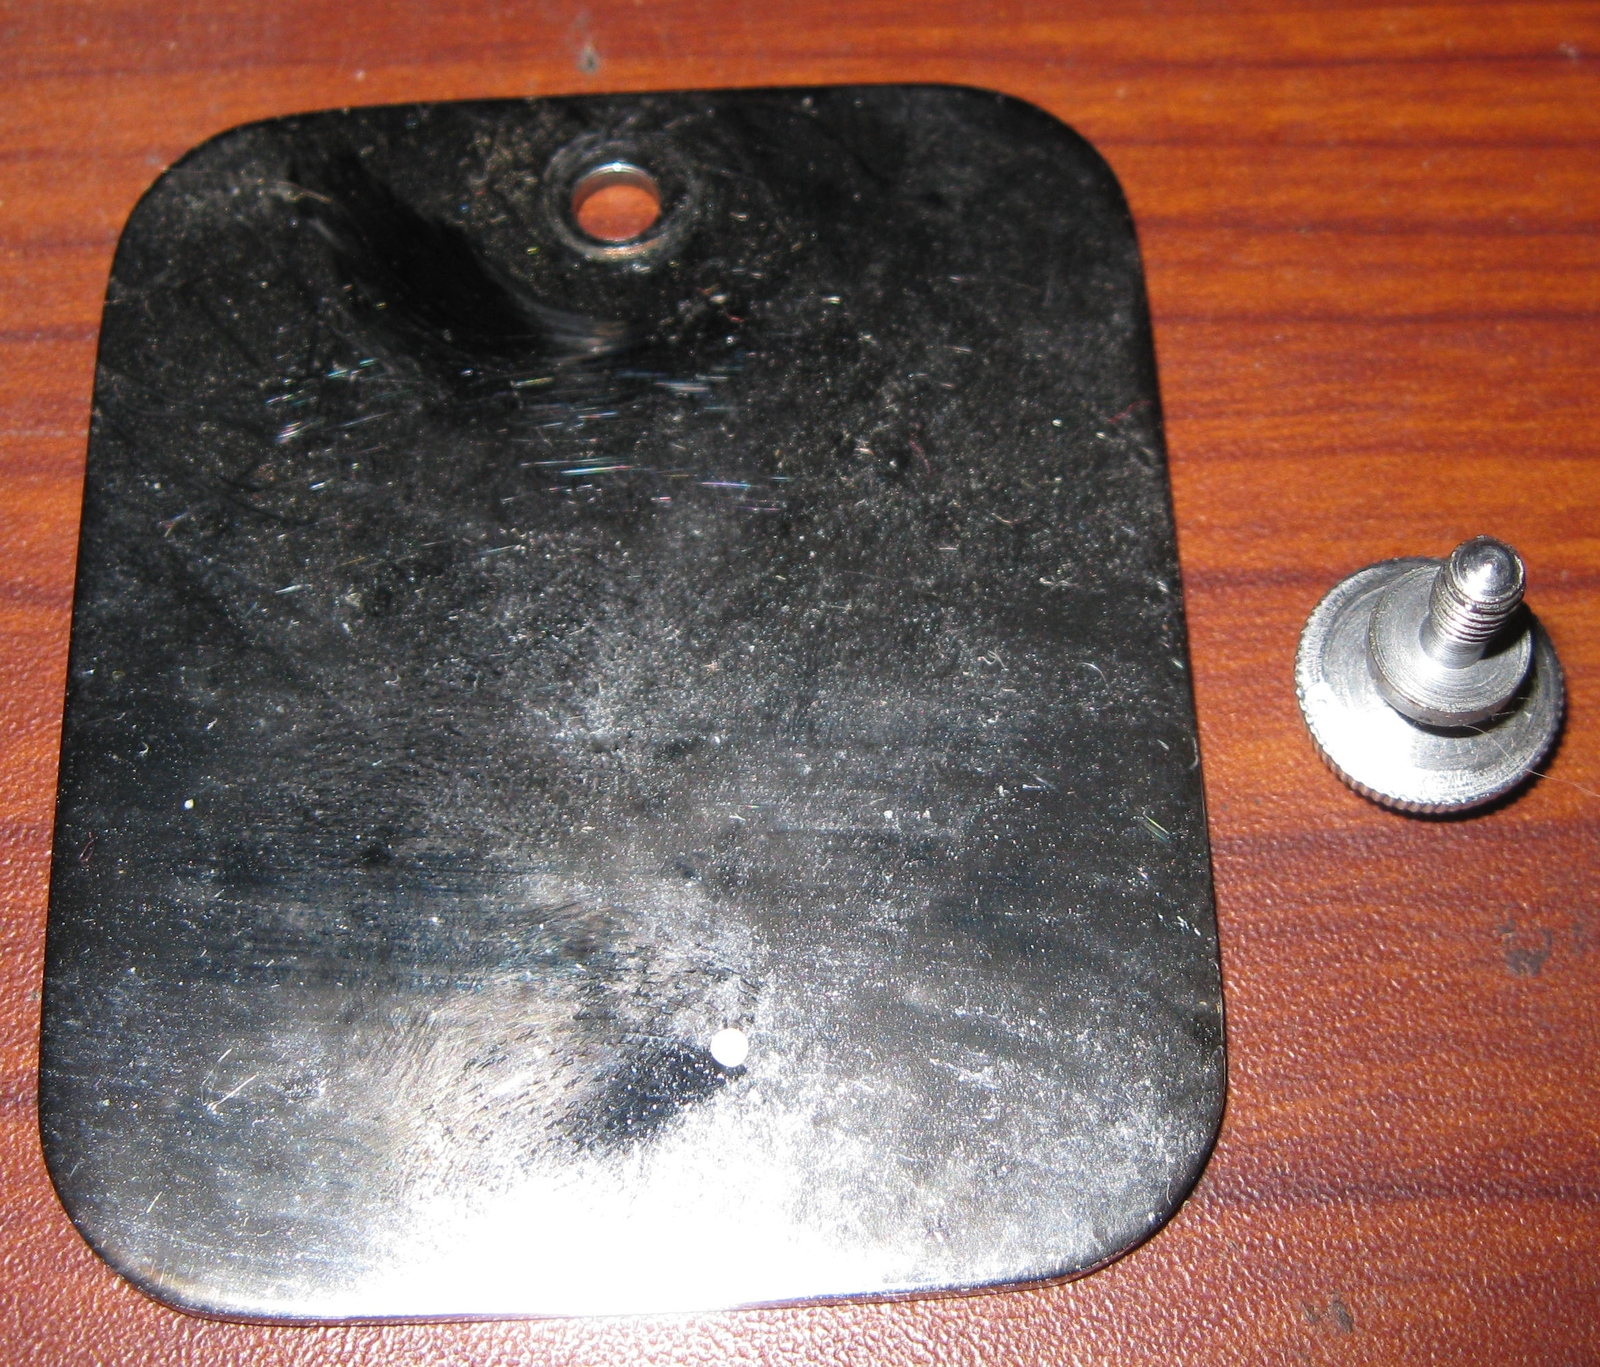 Chromed Japan Deluxe Square Rear Arm Inspection Plate w/Screw - $8.00